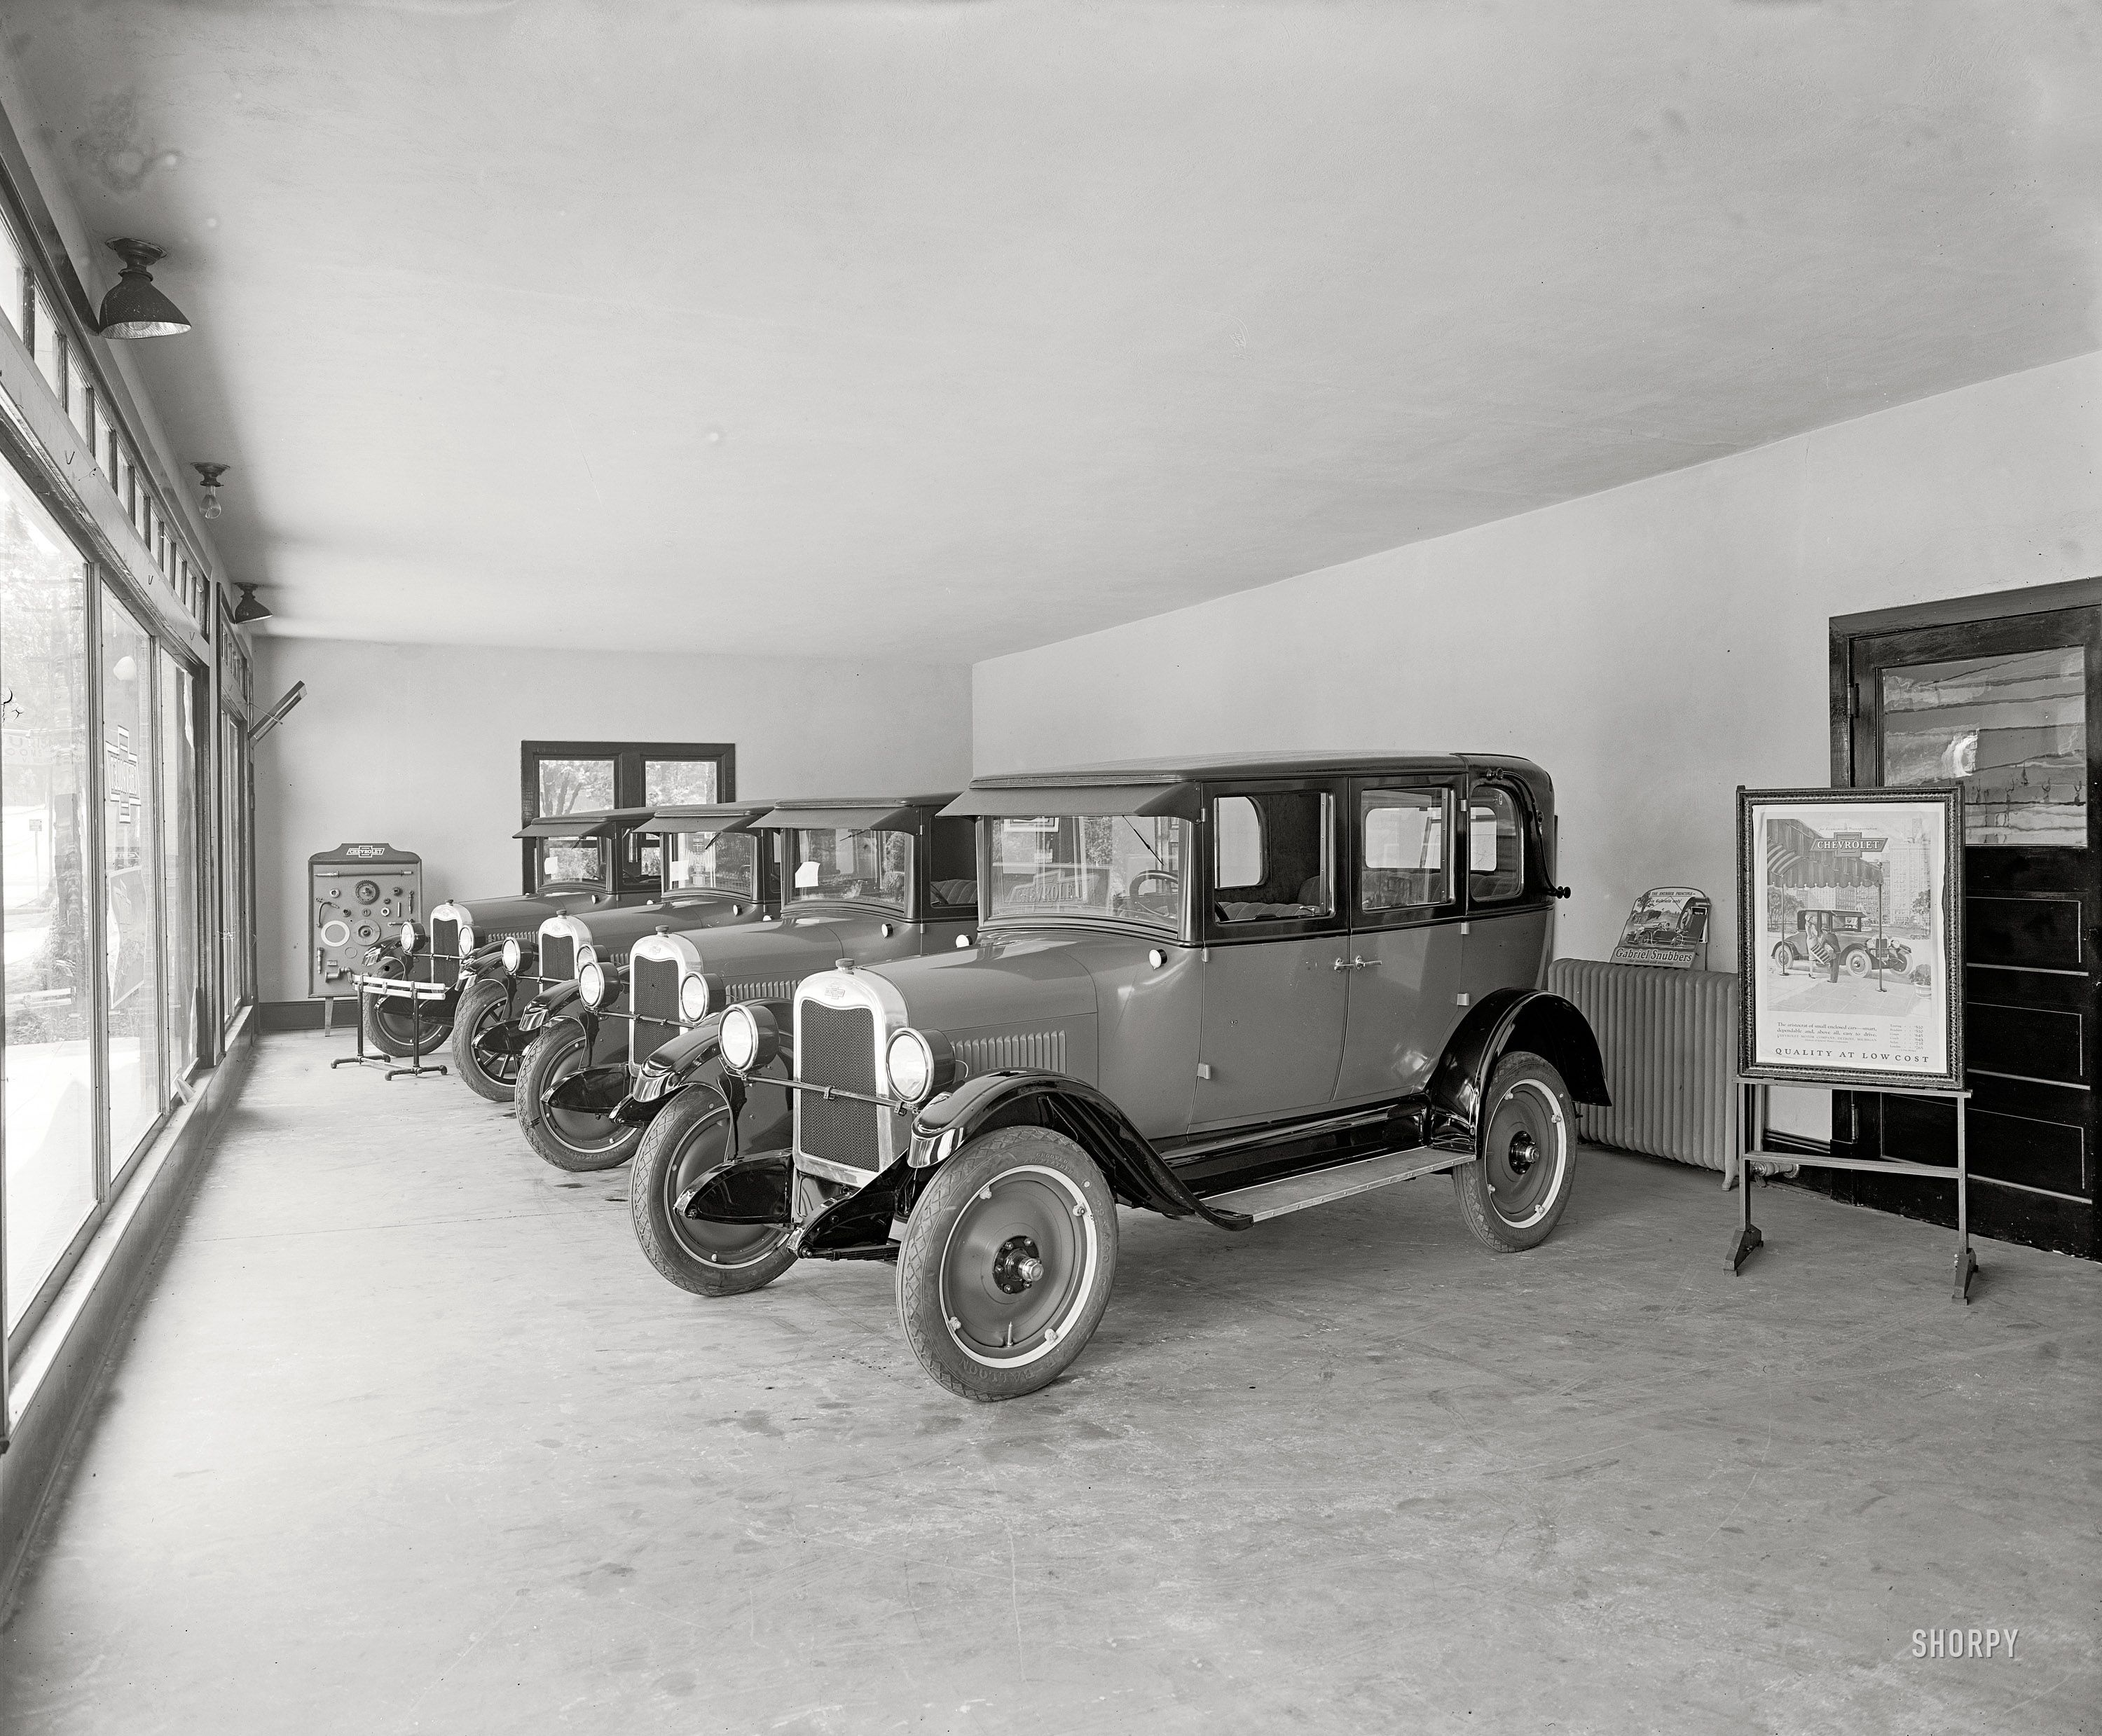 rockville maryland circa 1926 montgomery county motor co headquarters for quality at low. Black Bedroom Furniture Sets. Home Design Ideas